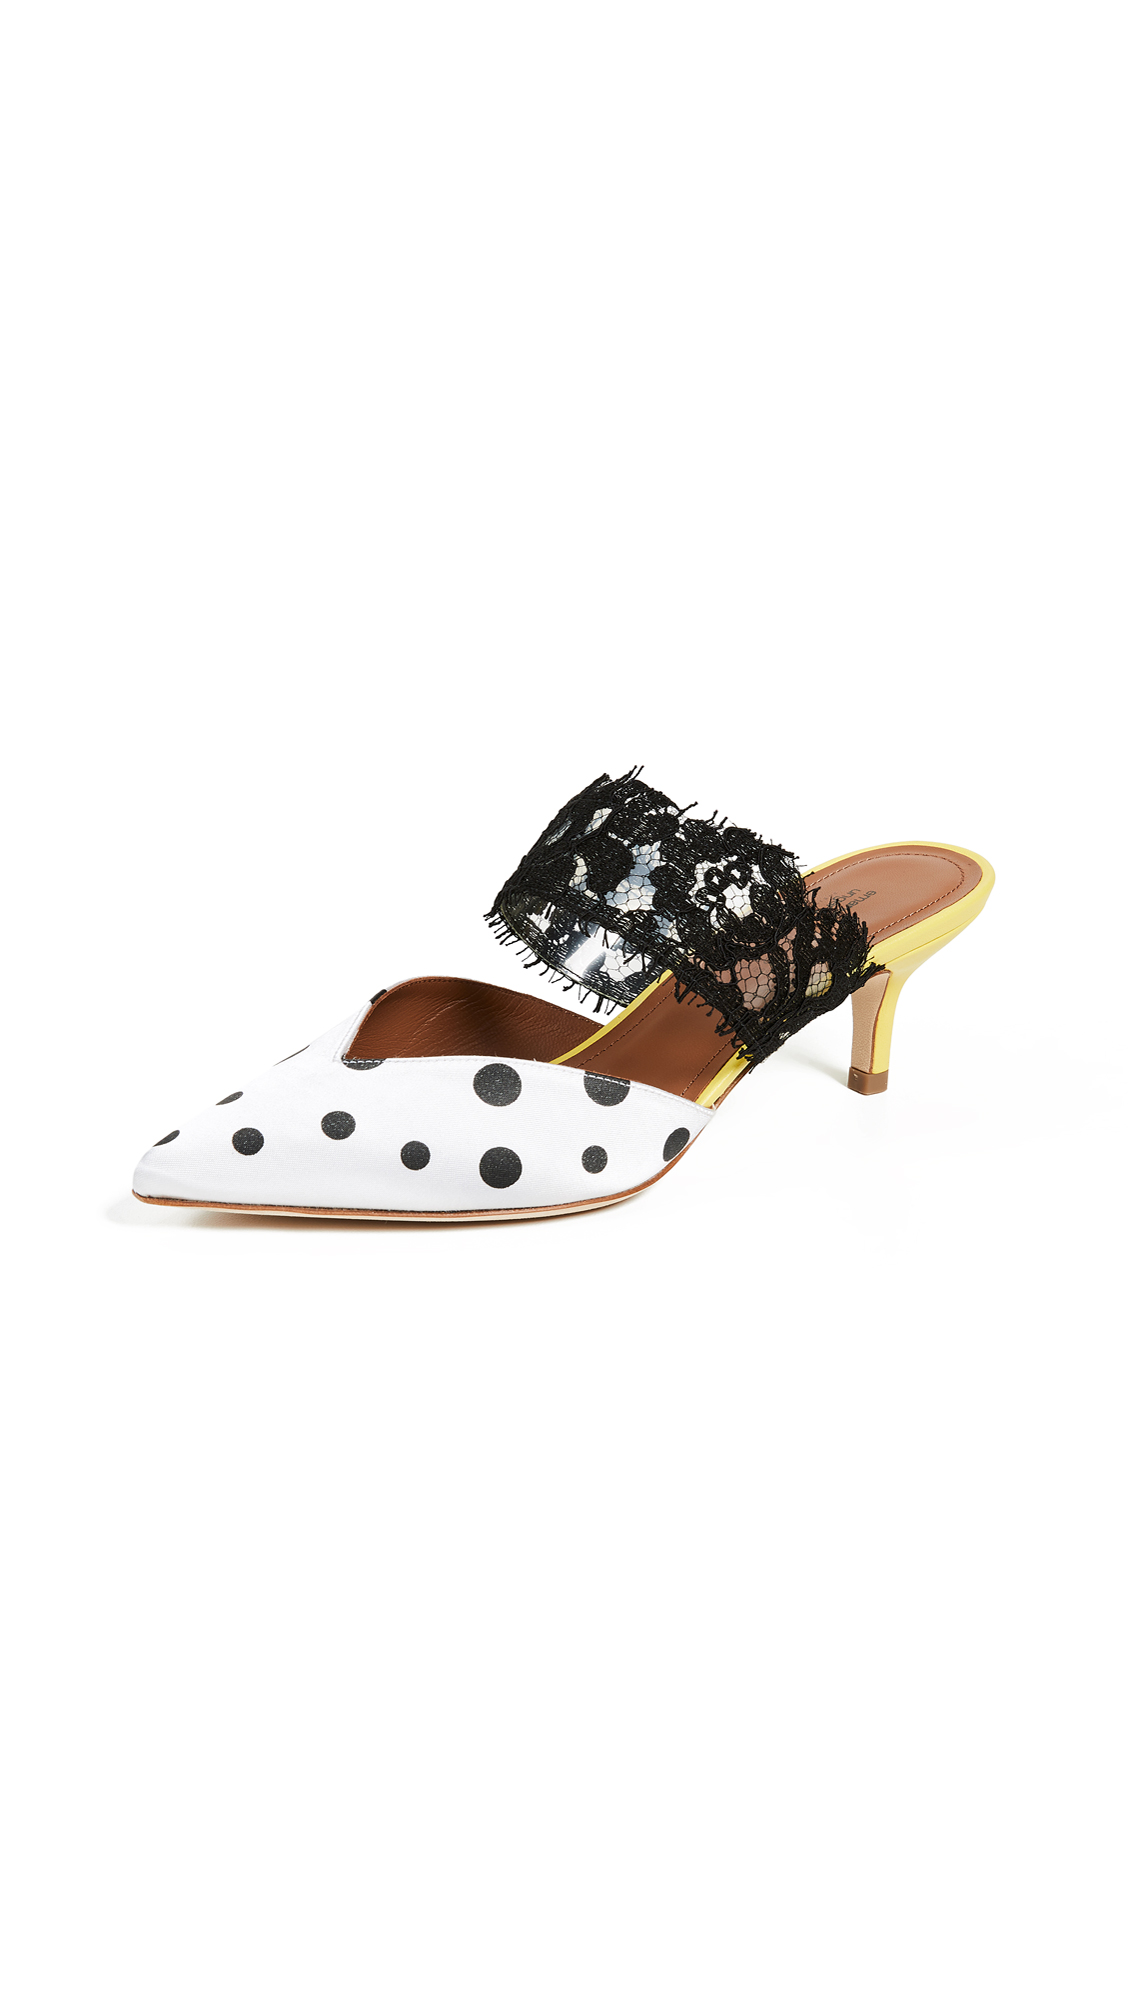 Malone Souliers Maisie Ungaro Mules - White/Black Dots/Yellow